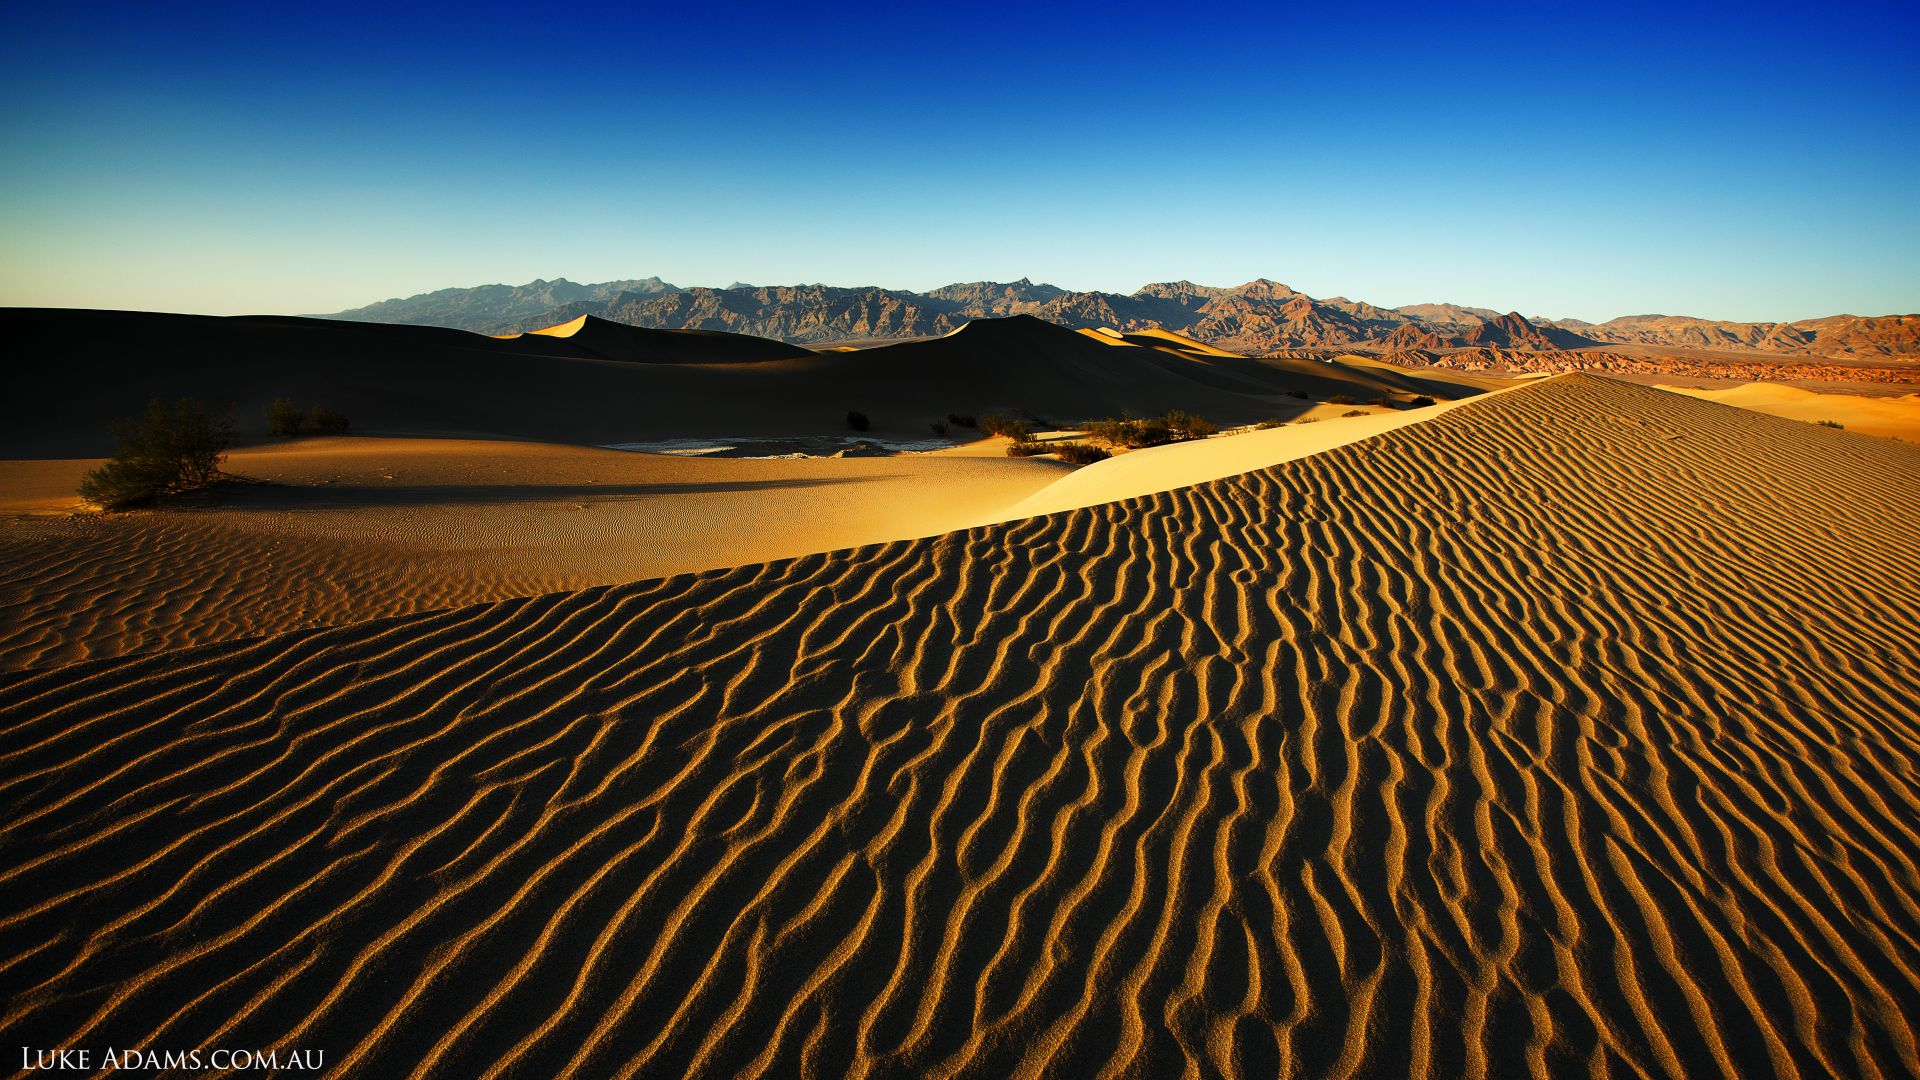 Долина Смерти, 4k, 5k, 8k, США, пустыни, дюны, песок, Death Valley, 4k, 5k wallpaper, 8k, USA, Desert, Dunes, sand (horizontal)